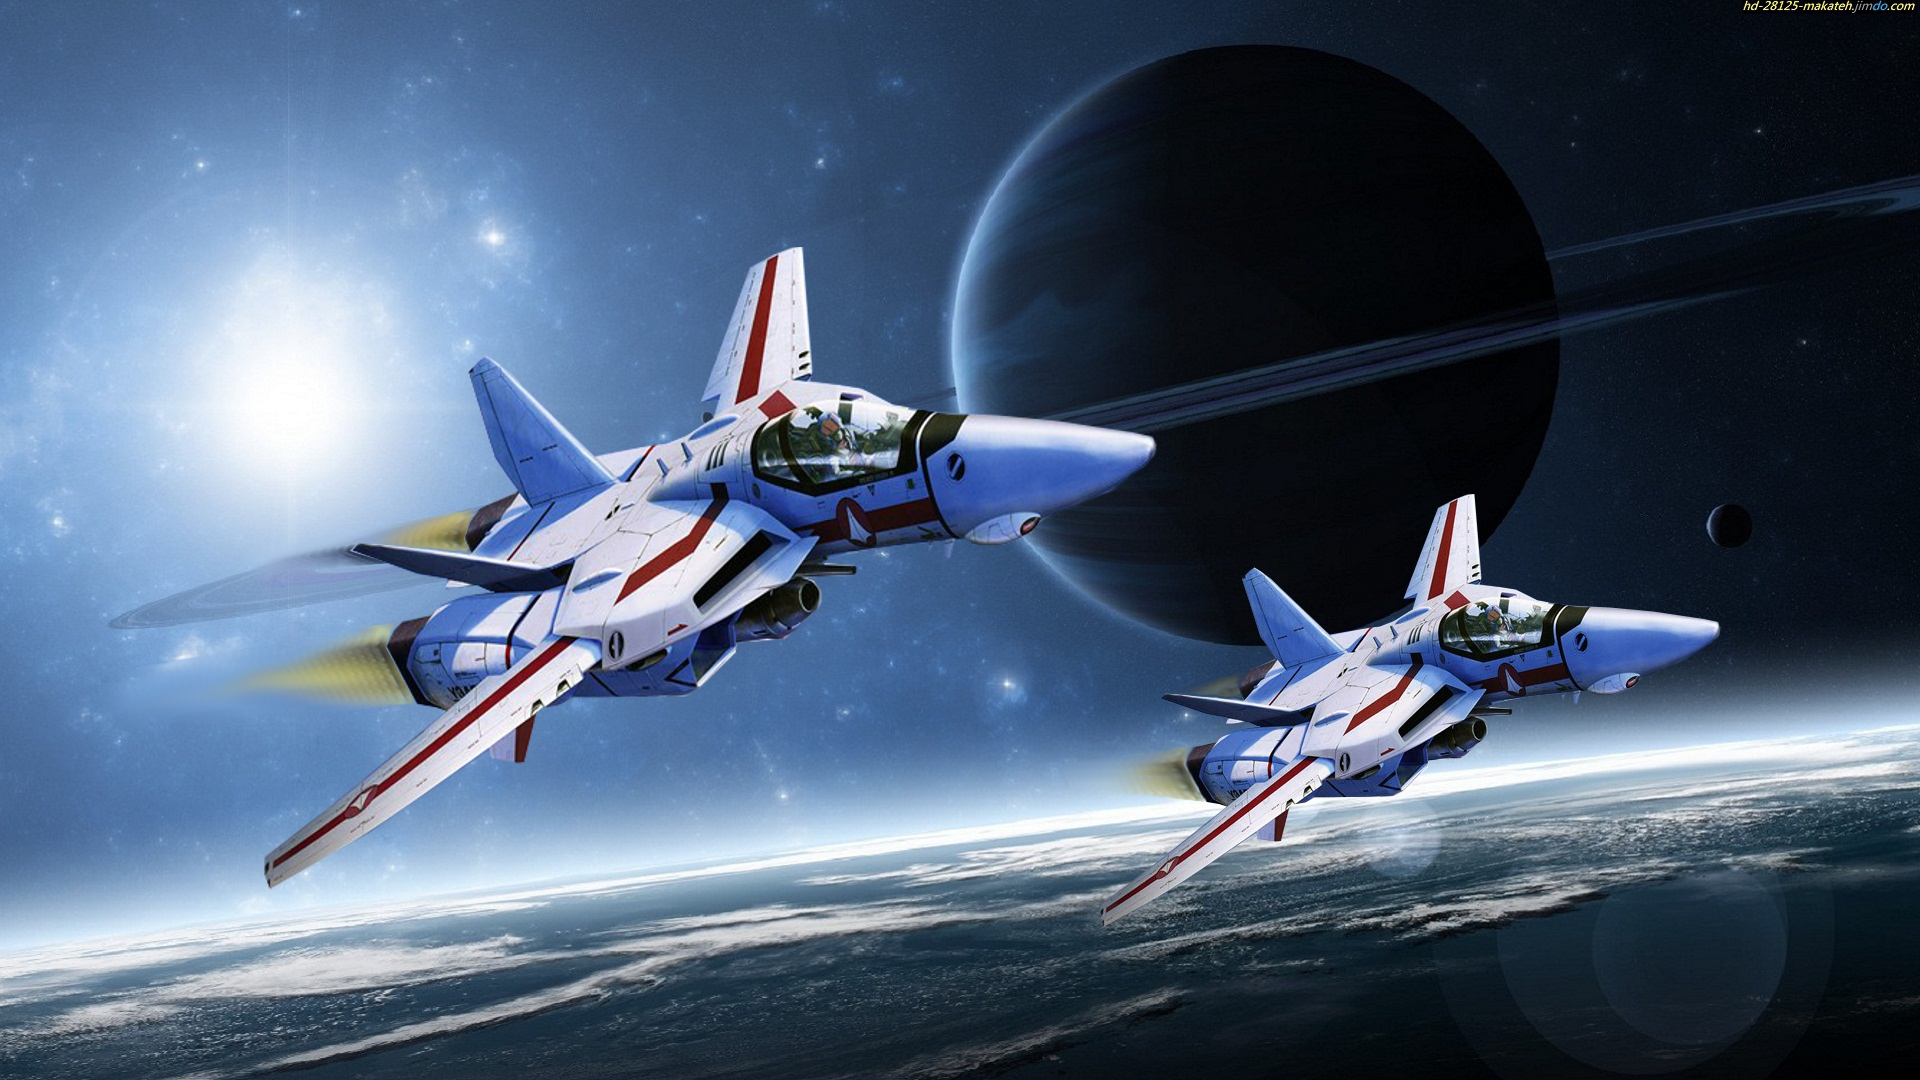 Hunter full hd wallpaper and background image 1920x1080 - Spaceship wallpaper ...